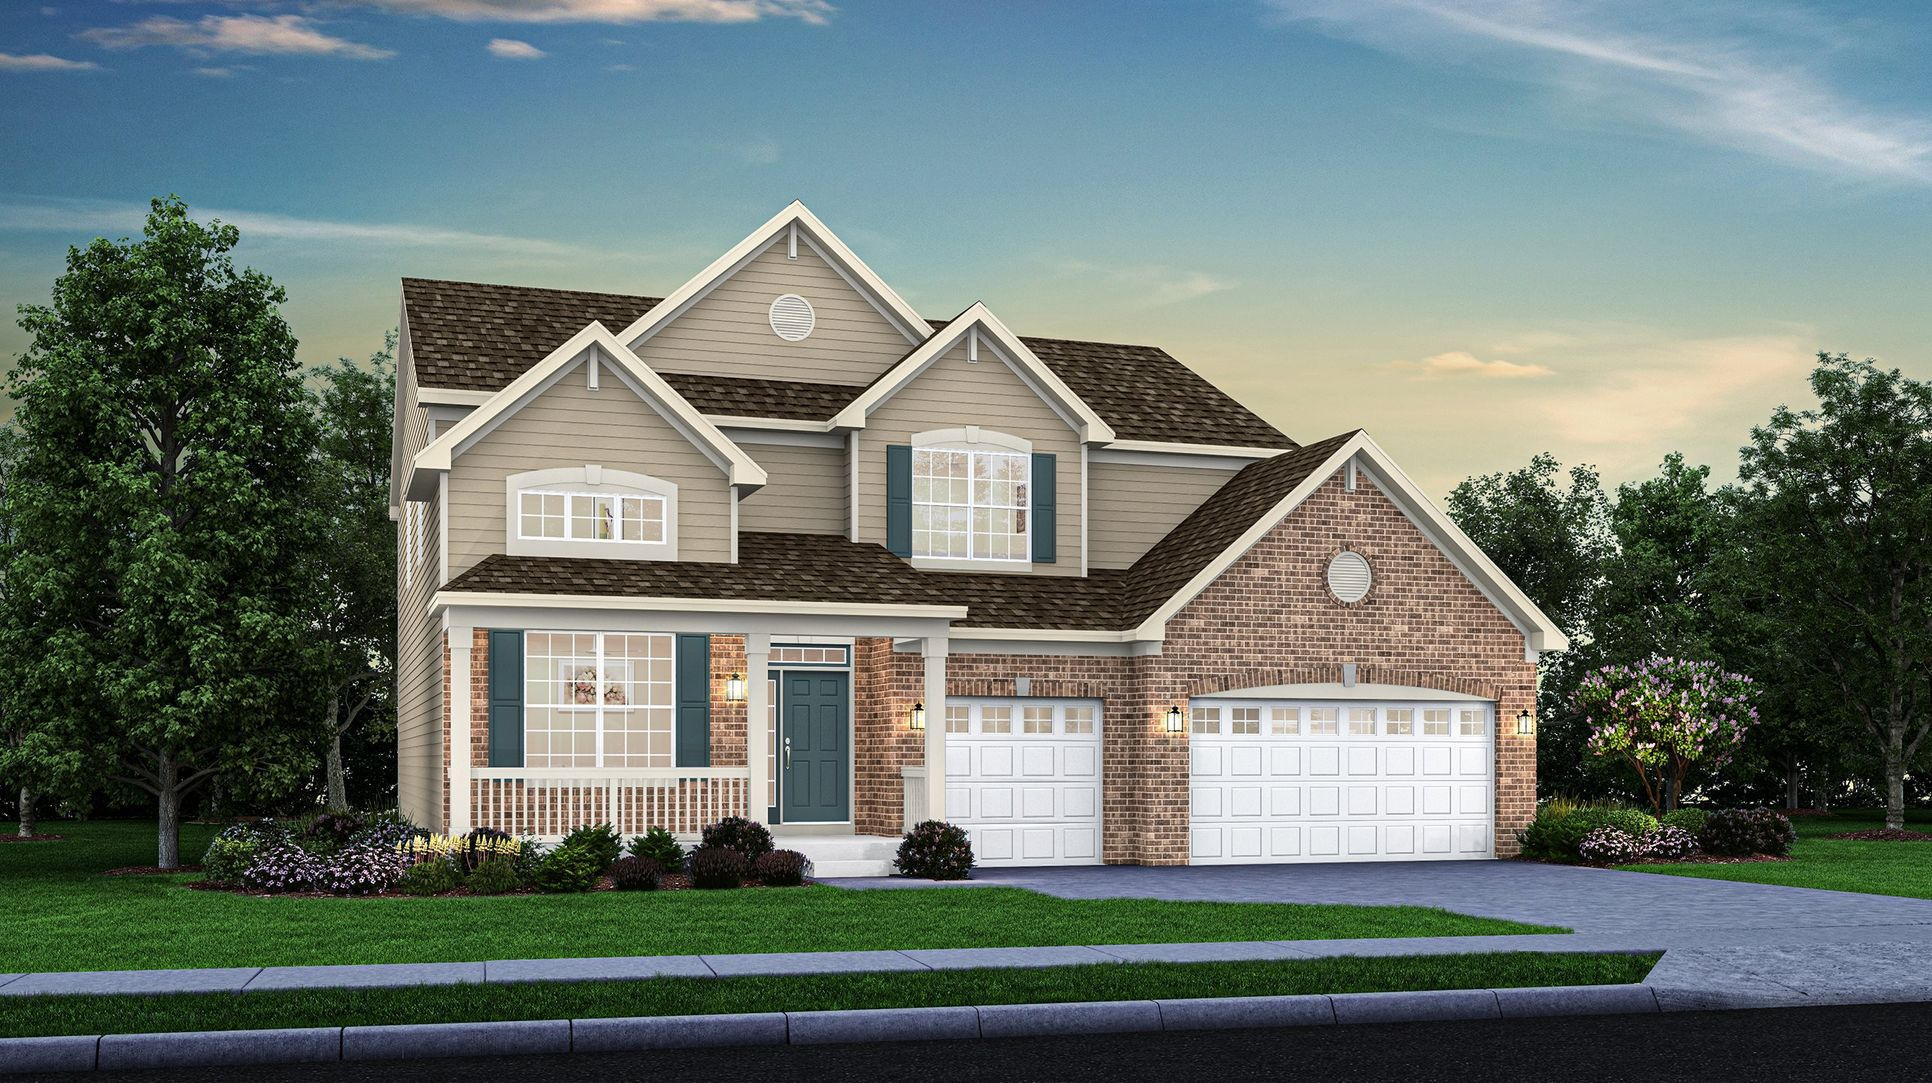 New Raleigh Homes for sale in Crown Pointe, Indiana by Lennar featuring our Single Family Collection